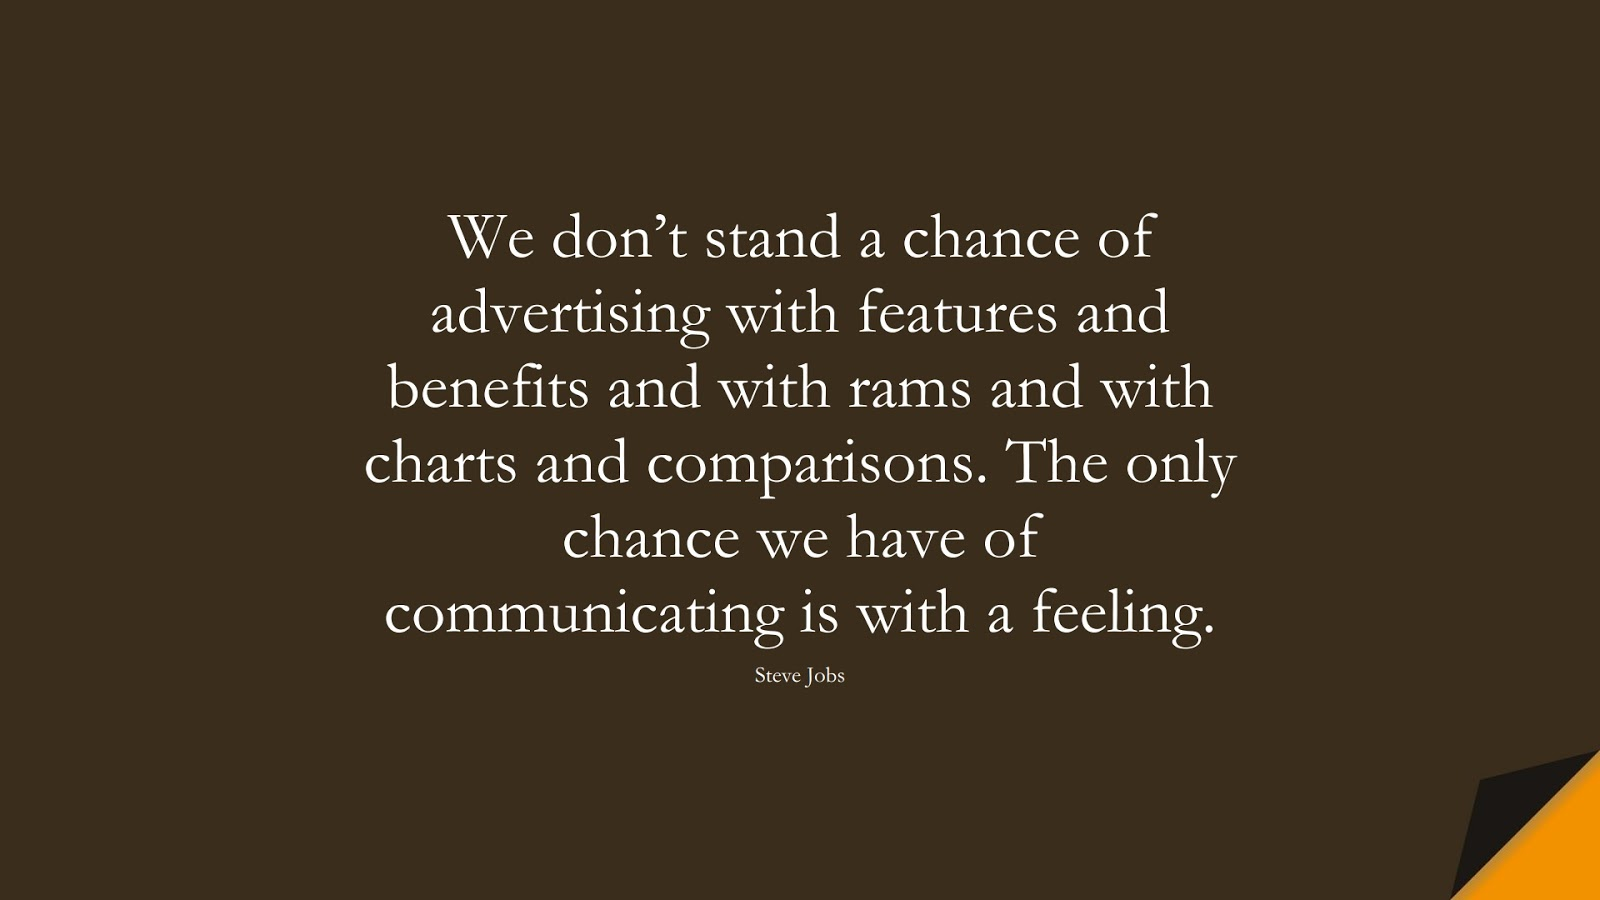 We don't stand a chance of advertising with features and benefits and with rams and with charts and comparisons. The only chance we have of communicating is with a feeling. (Steve Jobs);  #SteveJobsQuotes